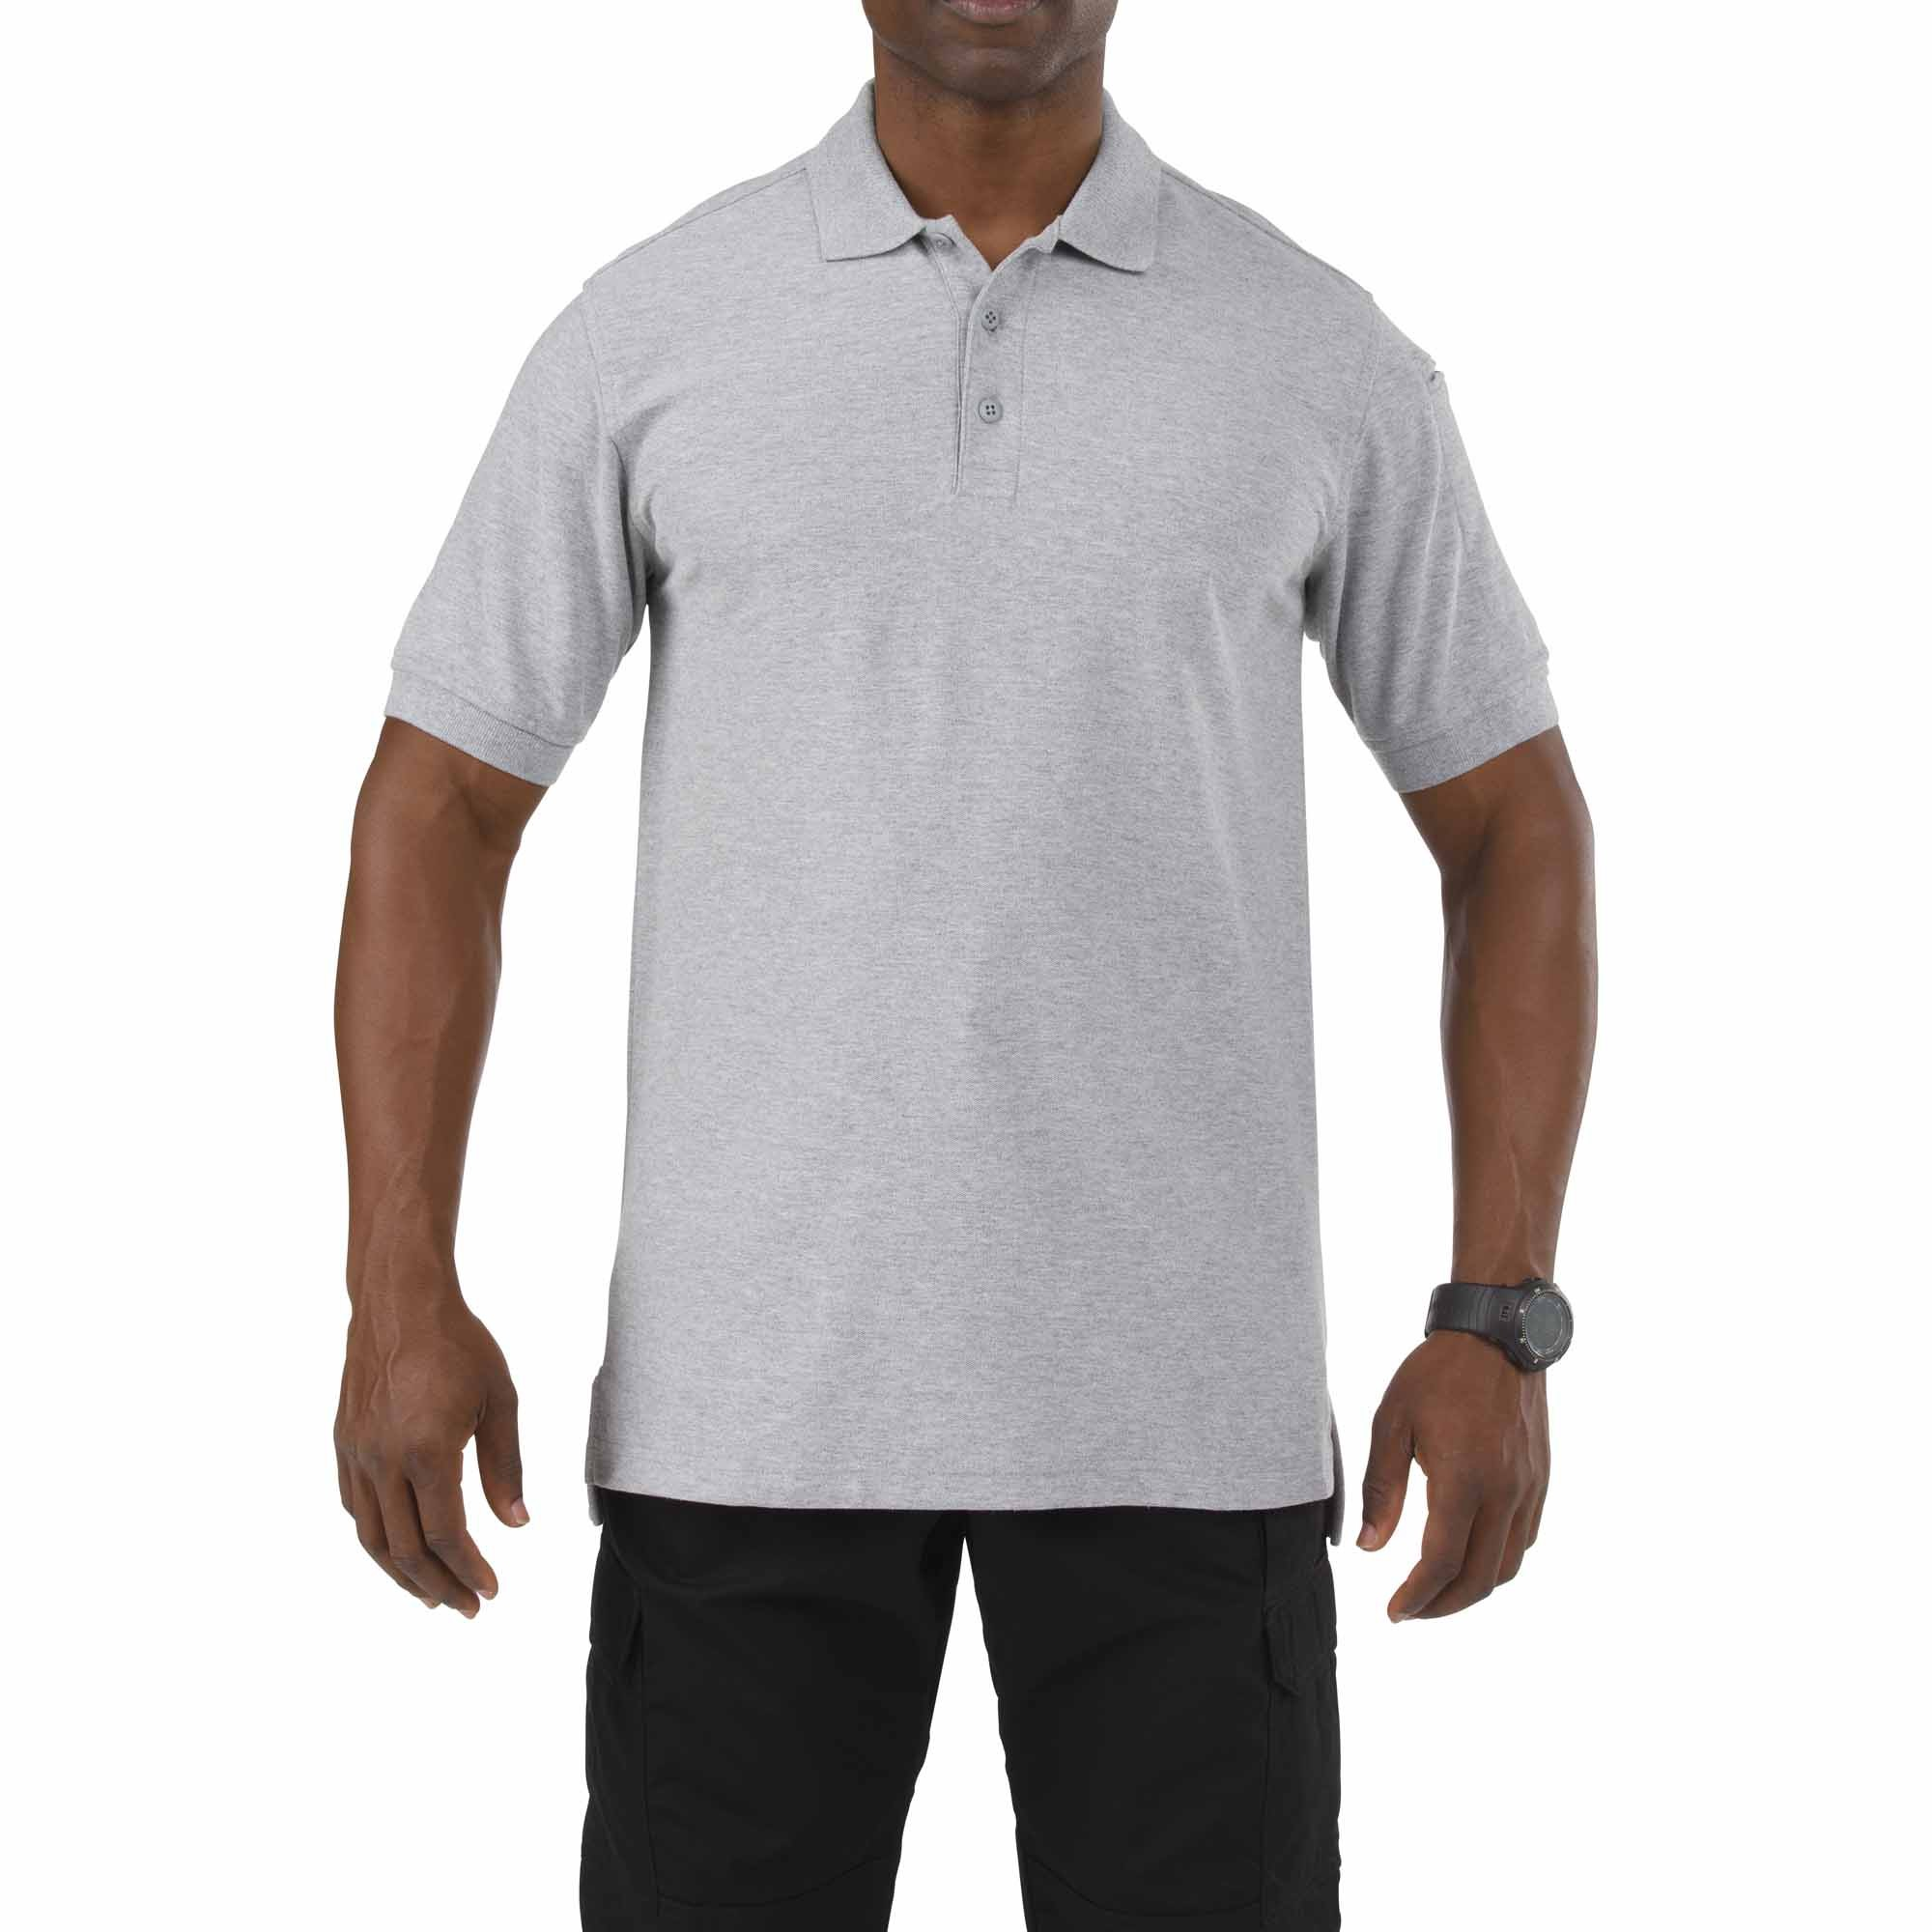 5.11 Mens Short Sleeve Utility Polo 41180